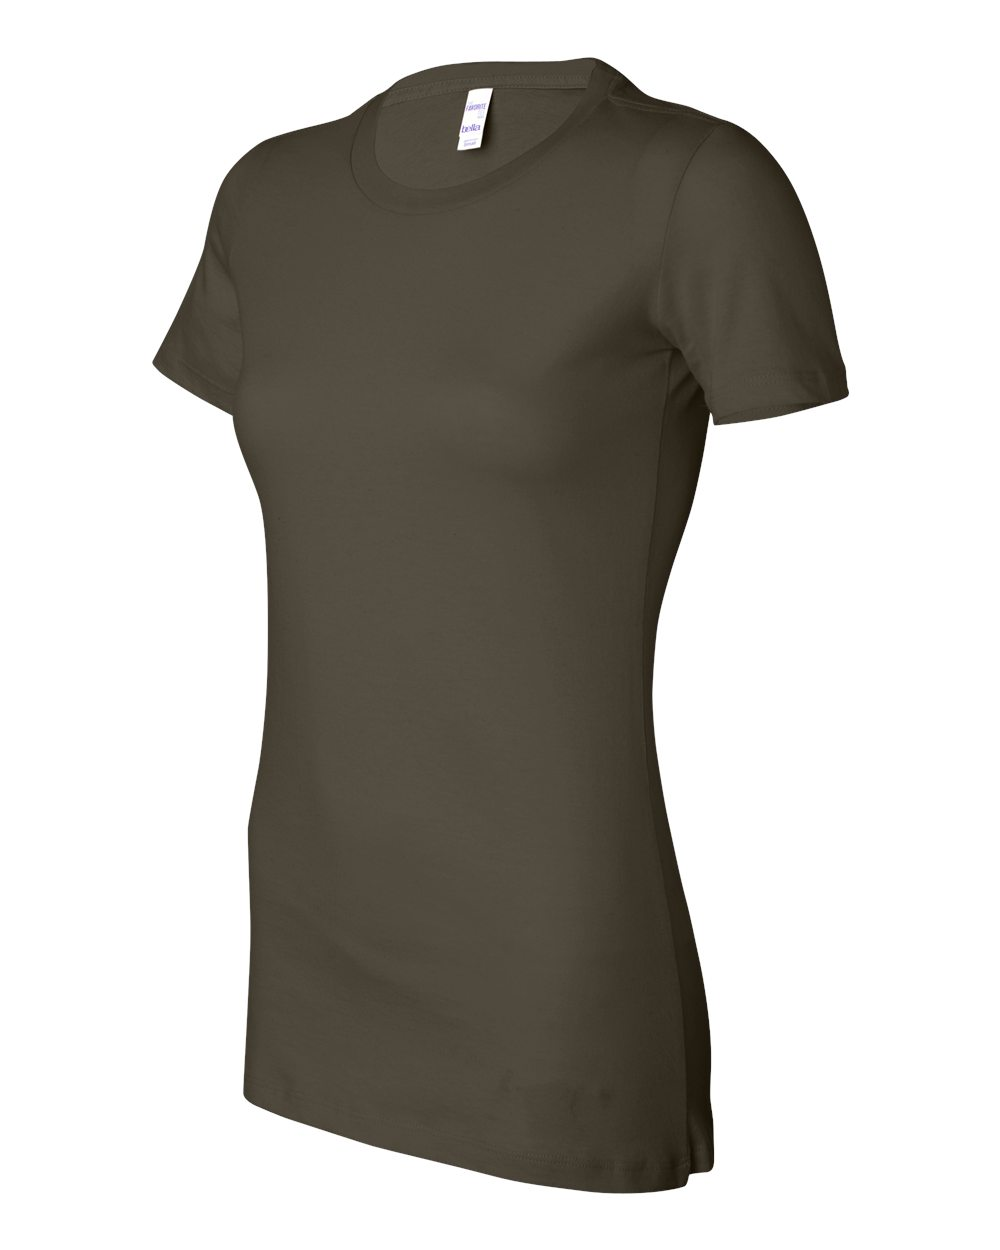 Bella-Canvas-Womens-The-Favorite-T-Shirt-6004-Size-S-2XL thumbnail 9